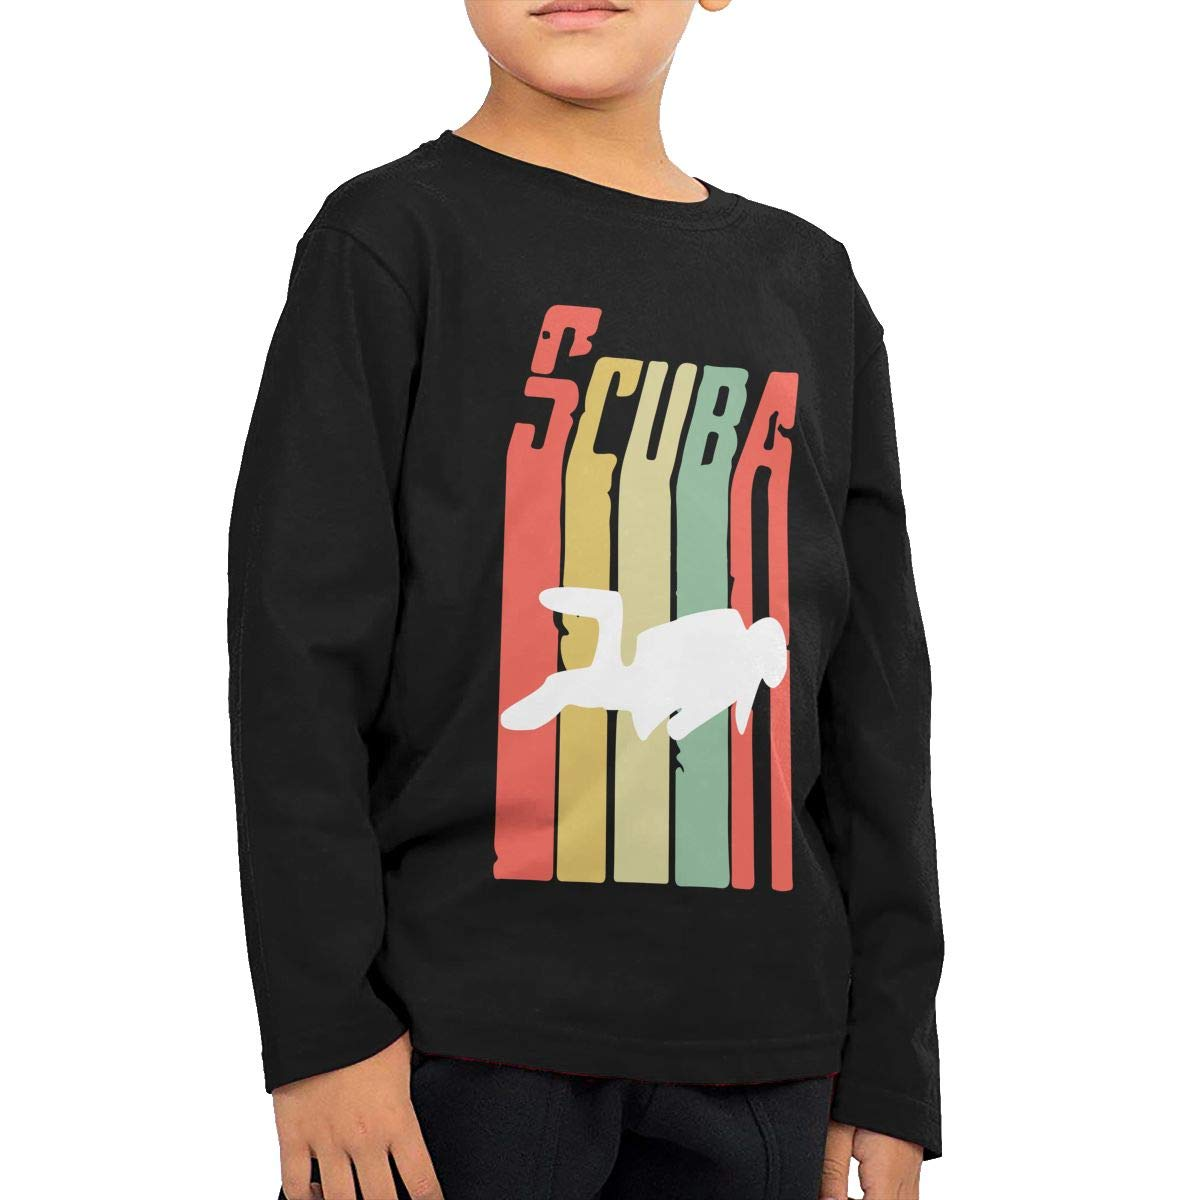 Toddler Childrens Vintage Scuba Diver Printed Long Sleeve 100/% Cotton Infants Tee Shirt